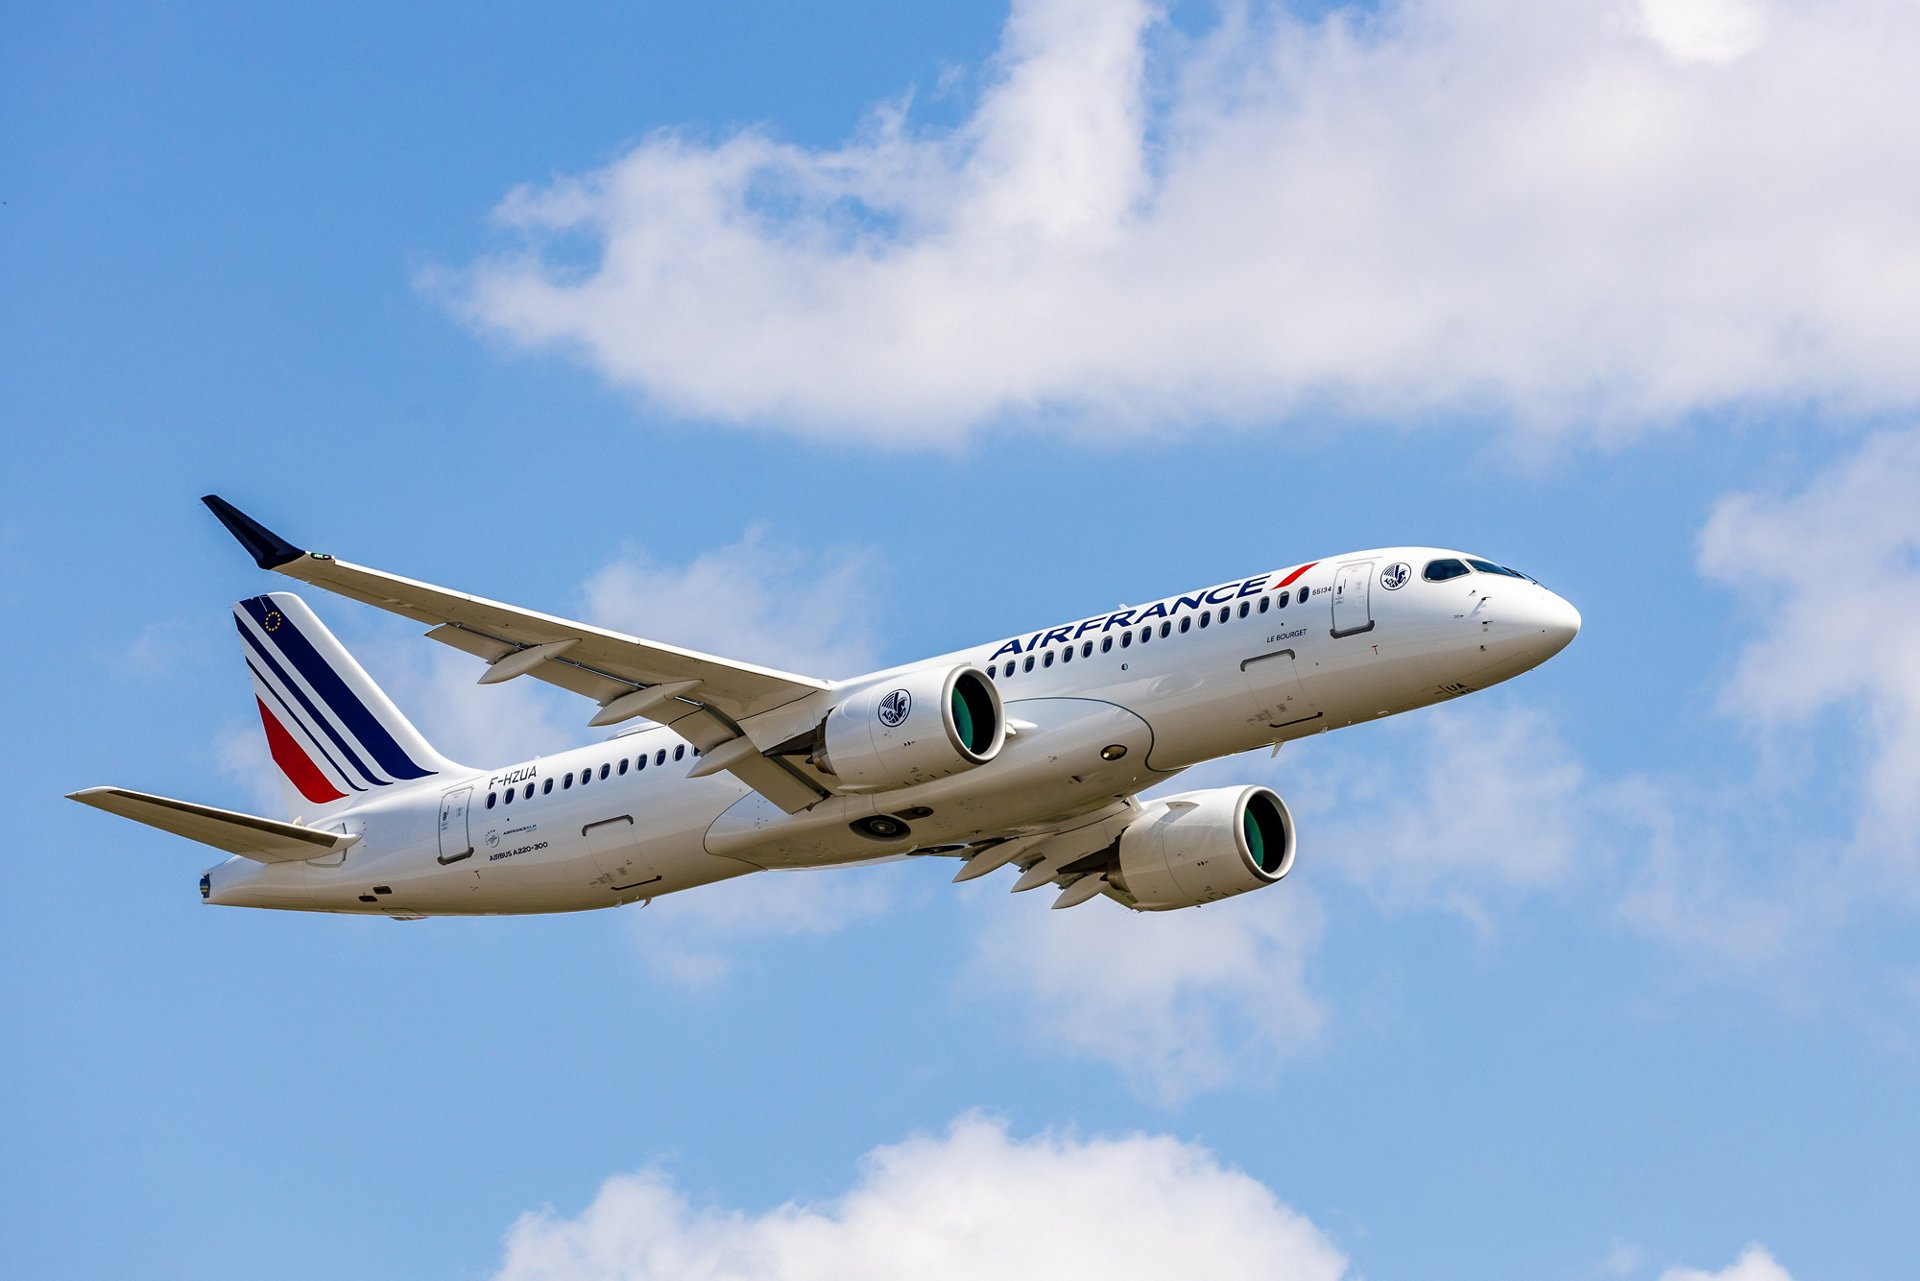 Air France has received its first A220-300 from an order for 60 aircraft of the type, the largest A220 order from a European carrier. The aircraft was delivered from Airbus' final assembly line in Mirabel, Quebec, Canada and officially unveiled to the public during a ceremony held at Paris Charles-De-Gaulle Airport.